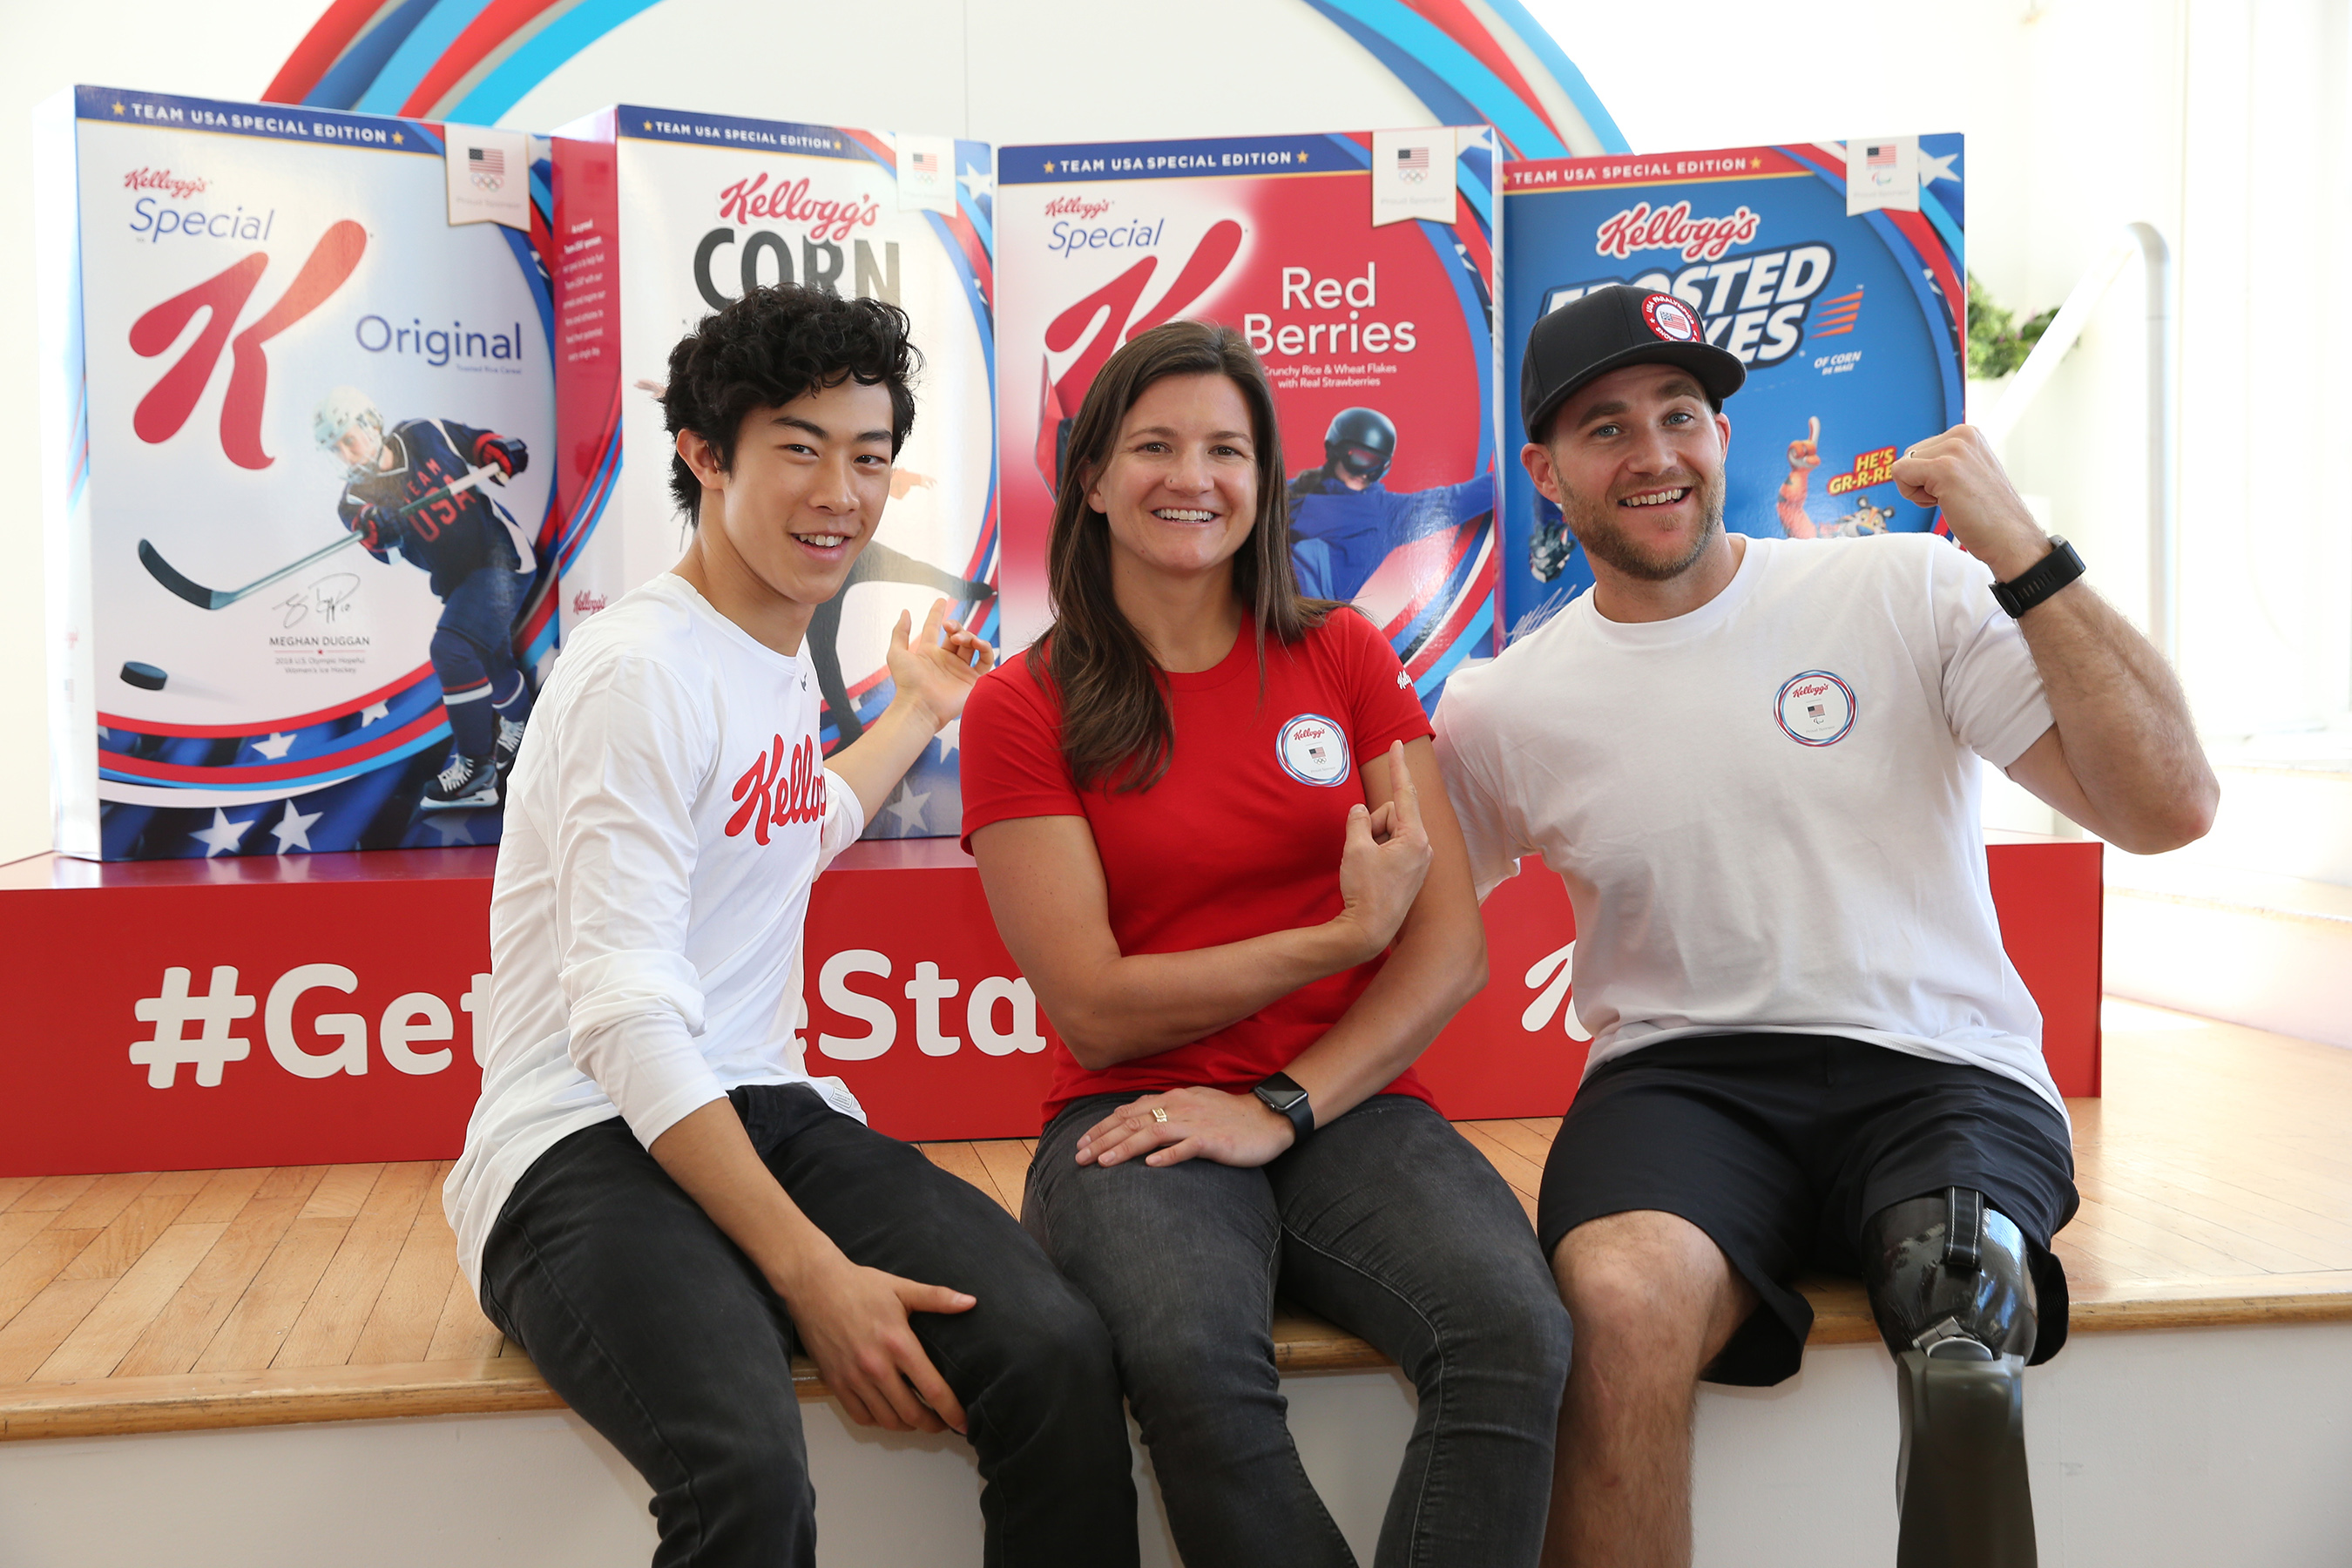 Team USA Hopefuls Nathan Chen, figure skating, from left, Kelly Clark, snowboarding, and Mike Schultz, Paralympic snowboarding, pose with limited-edition cereal boxes. Along with Meghan Duggan, ice hockey (not pictured), the athletes were introduced as Team Kellogg's.